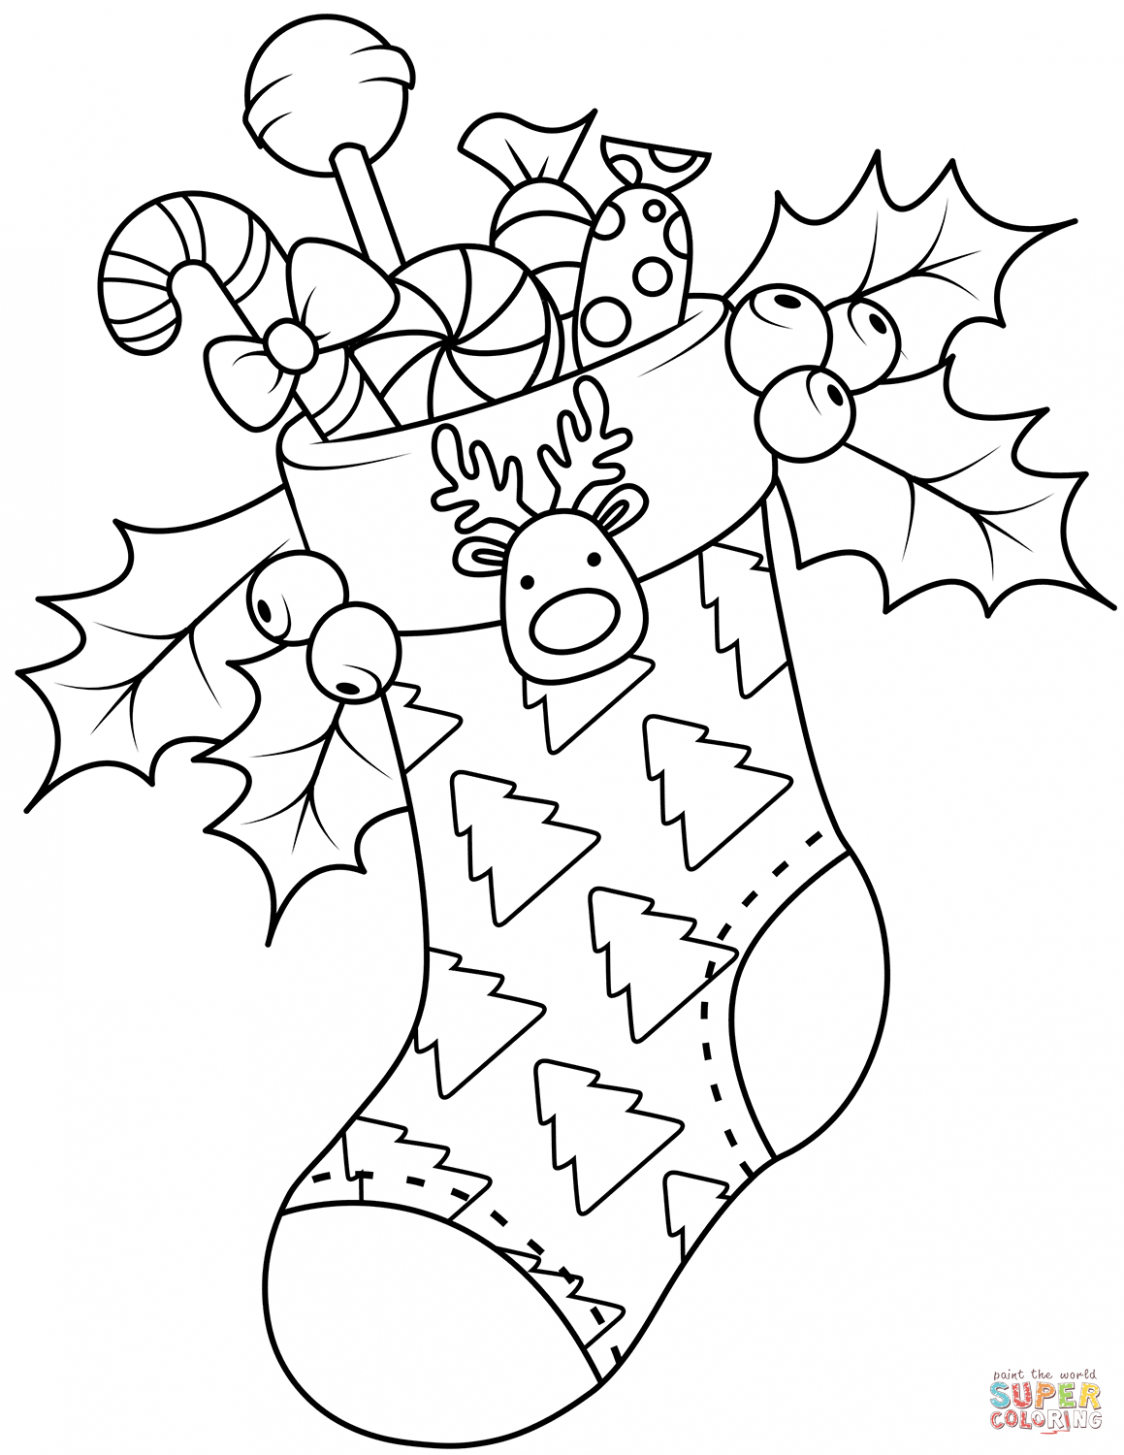 Christmas Stocking Coloring Page Free Printable Coloring Pages Chr Printable Christmas Coloring Pages Printable Christmas Stocking Snowflake Coloring Pages